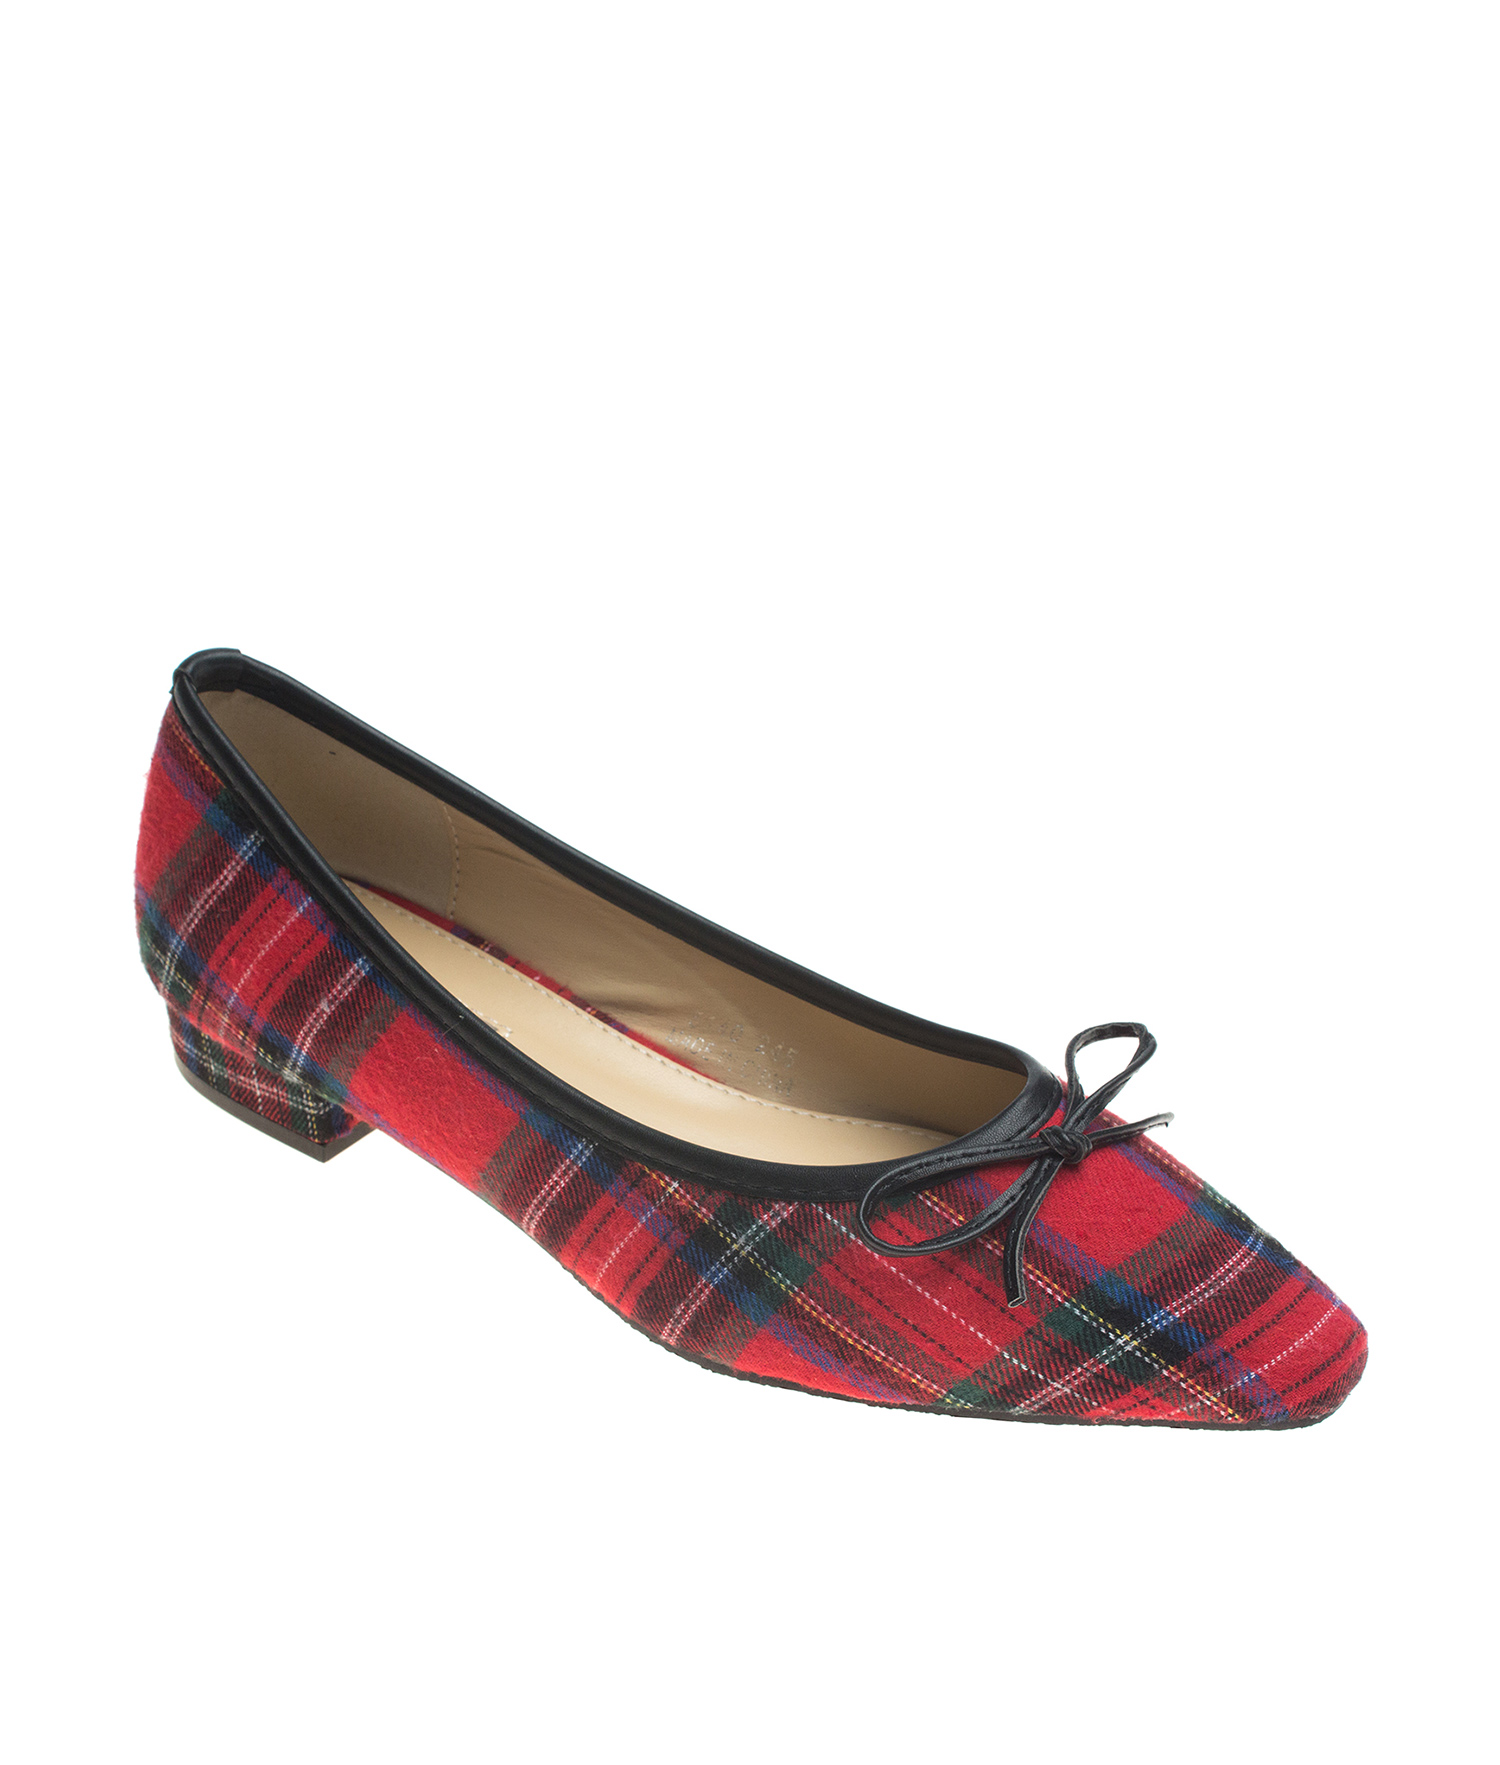 AnnaKastle Womens Pointy Toe Tartan Plaid Ballet Flats Red